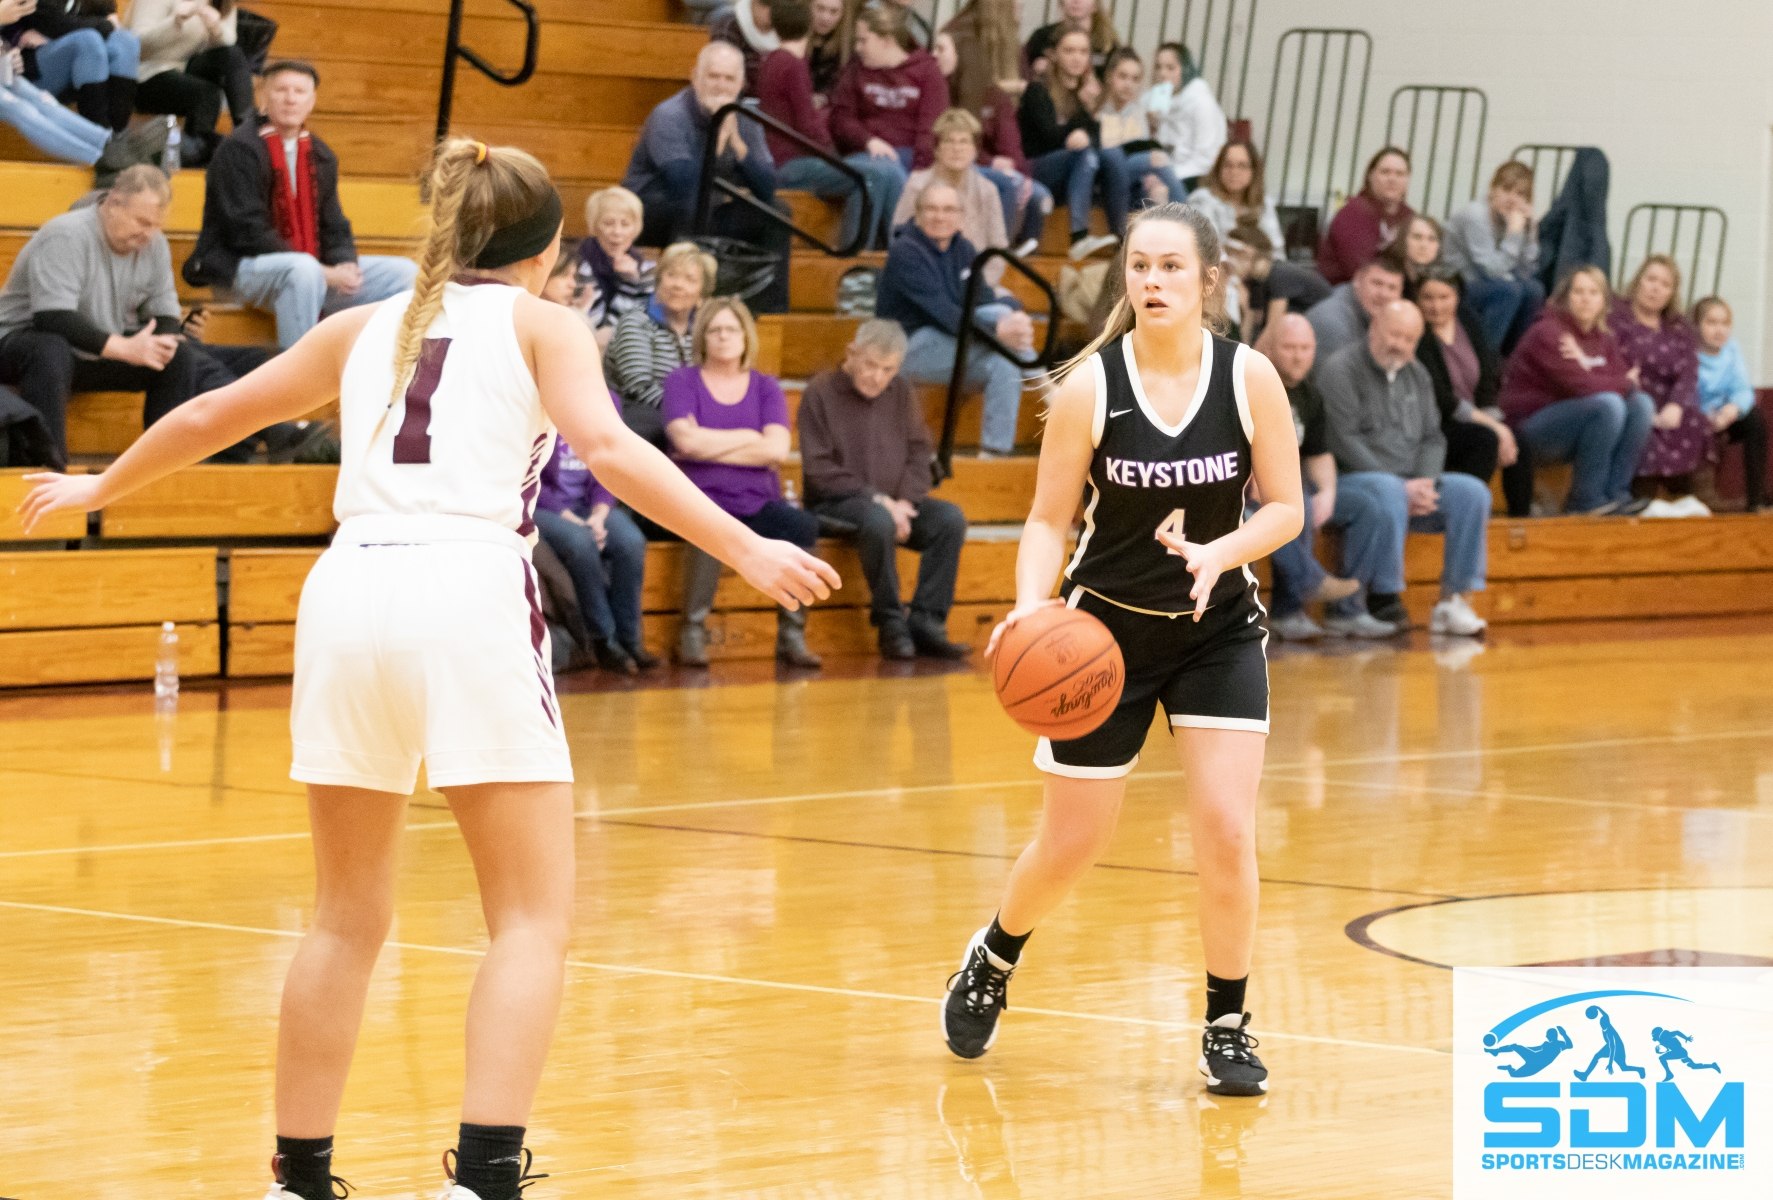 012220-Keystone@Wellington-GBK-23